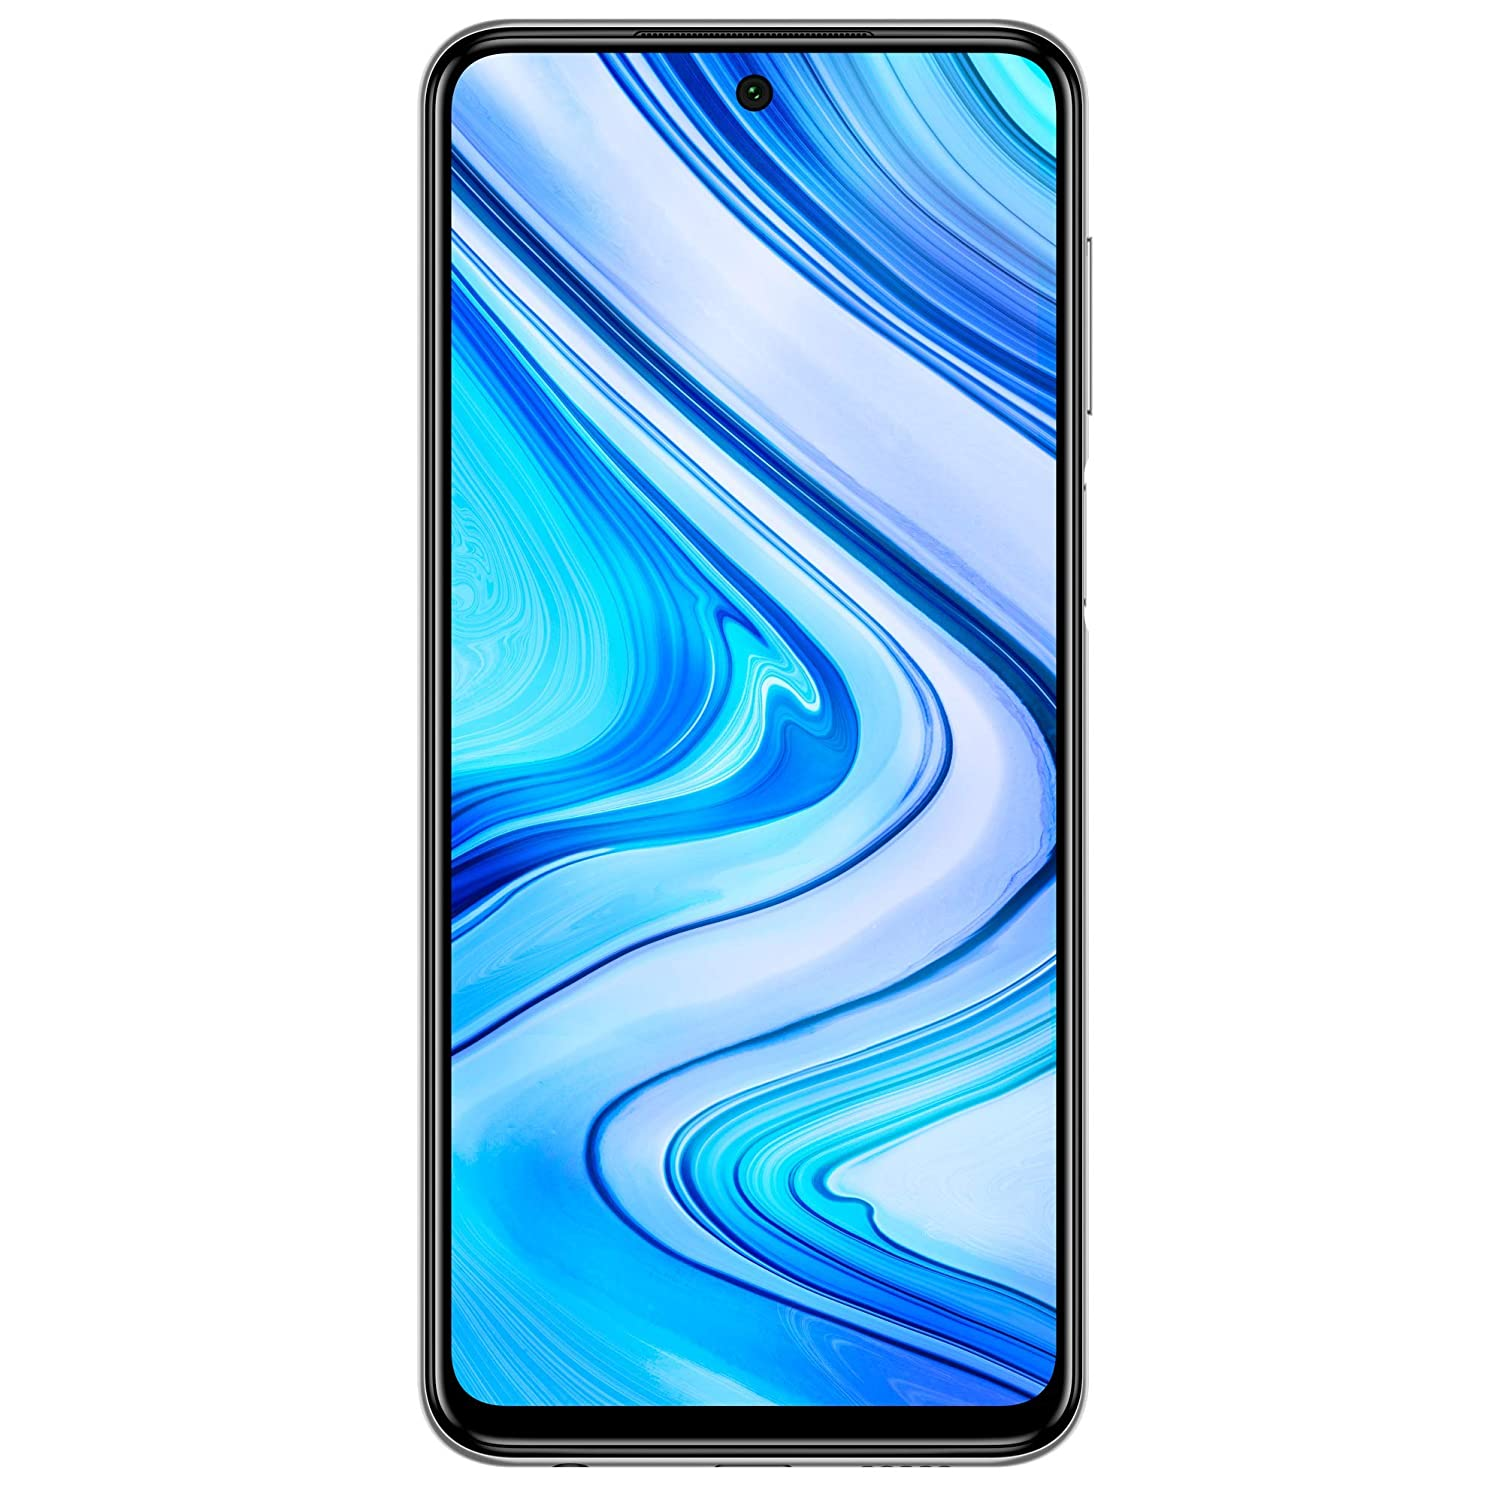 Redmi Note 9 Pro Max (Glacier White, 6GB RAM, 64GB Storage) - 64MP Quad Camera & Latest 8nm Snapdragon 720G & Alexa Hands-Free